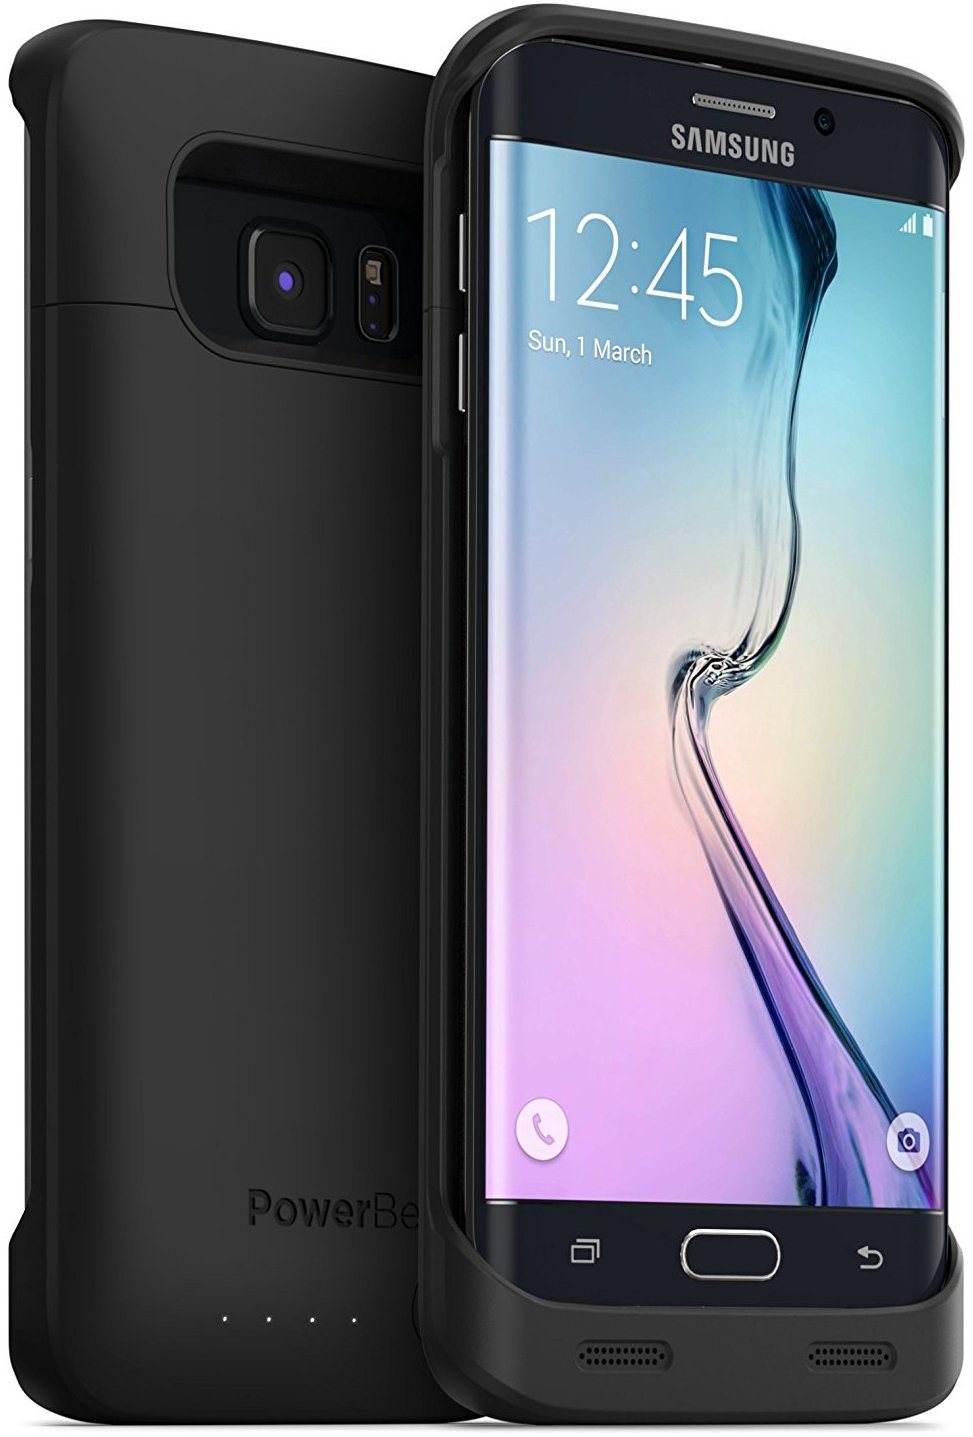 PowerBear Samsung Galaxy S6 Edge Battery Case [3500 mAh] External Battery Charger for The Galaxy S6 Edge (Up to 1.35X Extra Battery) - Black [24 Month Warranty]